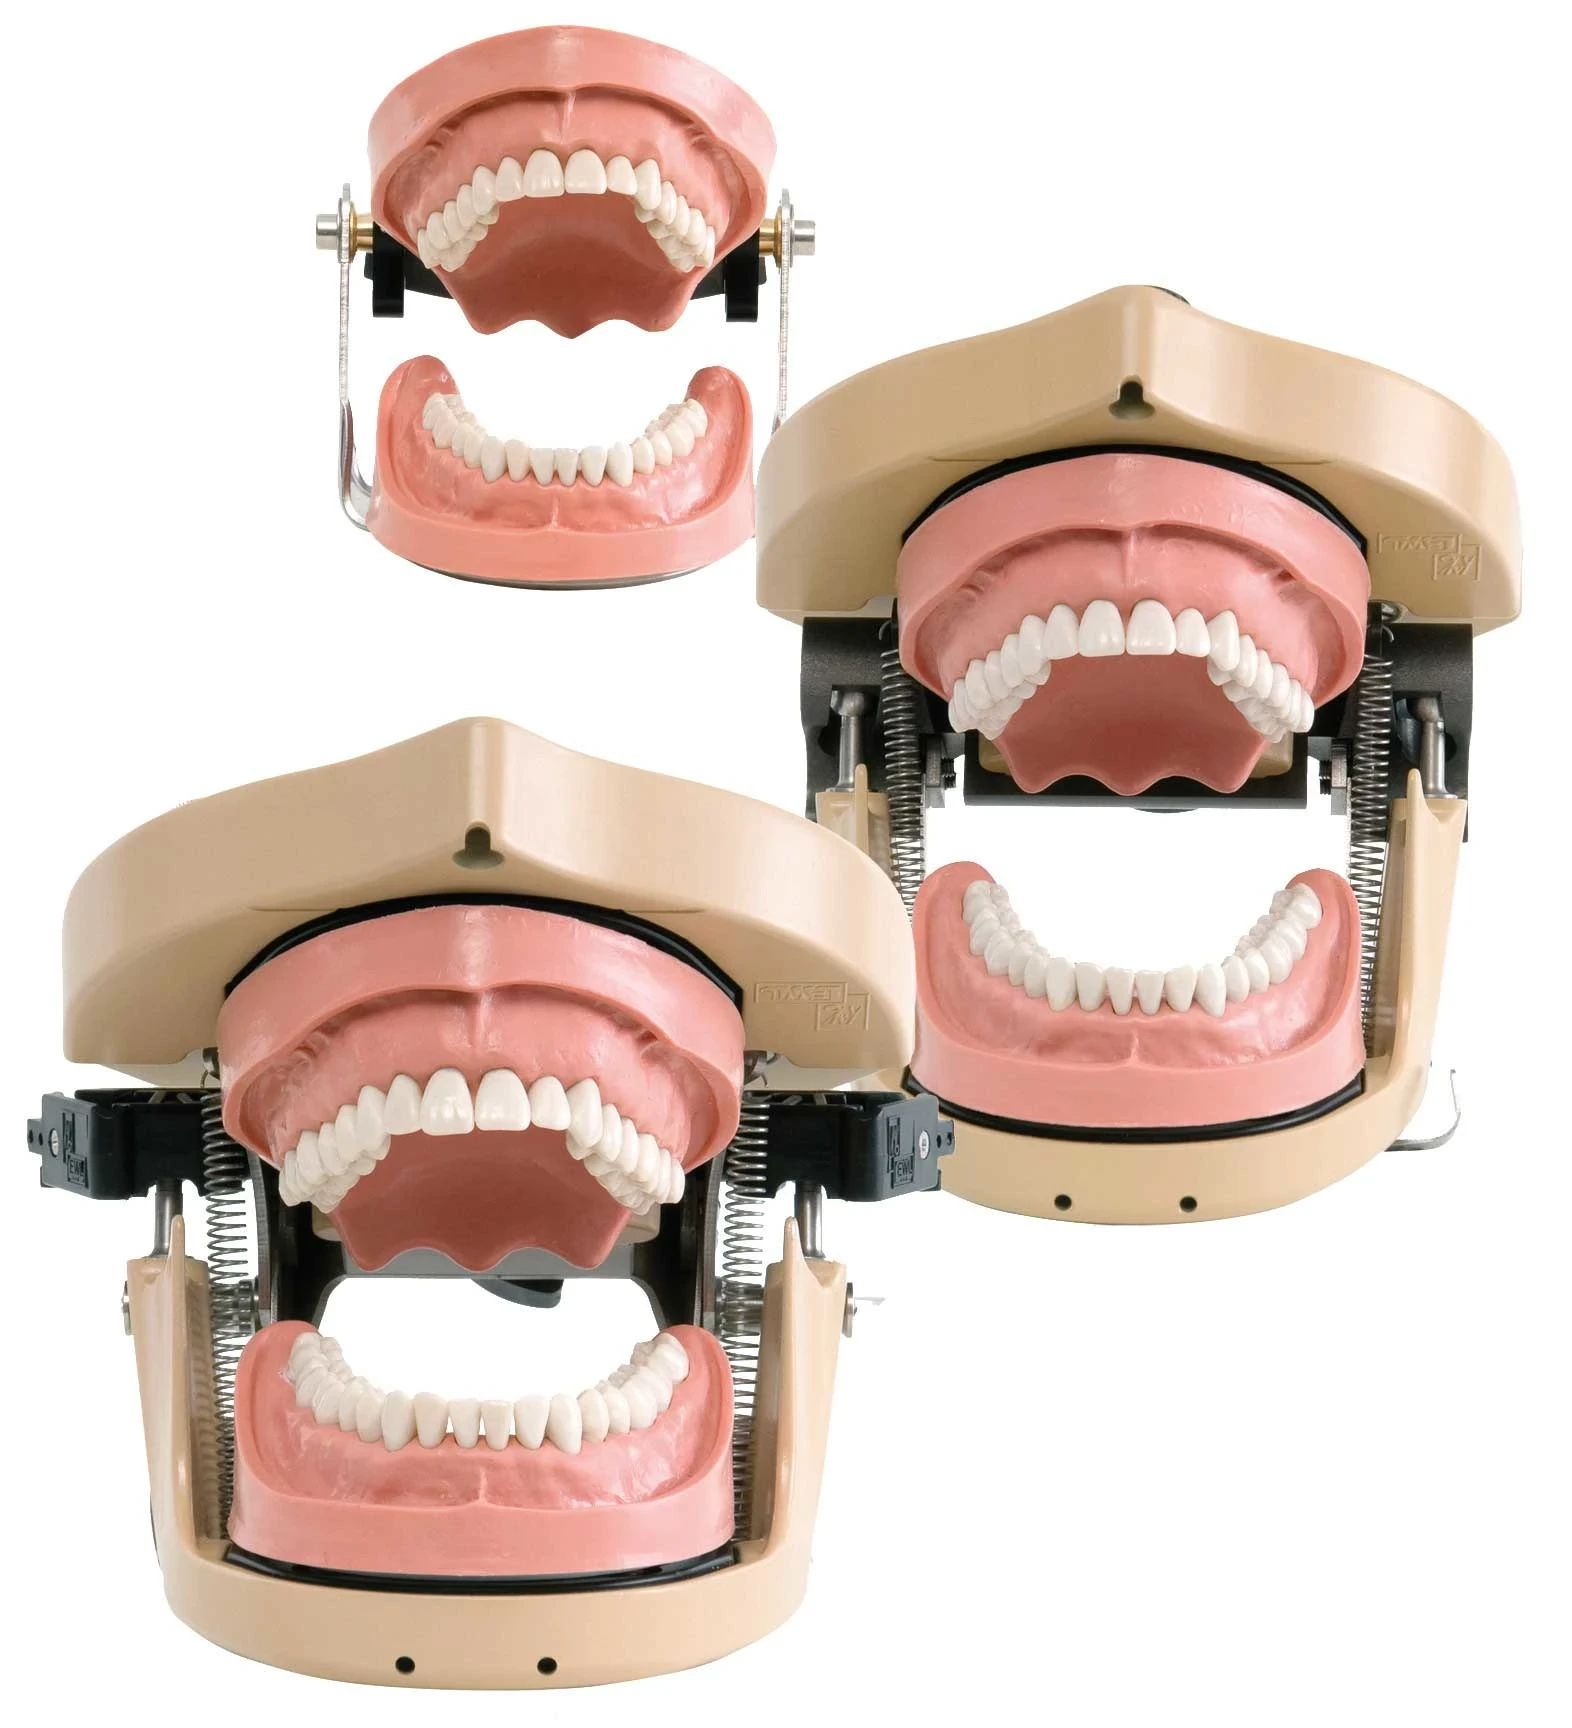 DSEclinical 5198 Dental Simulation Units